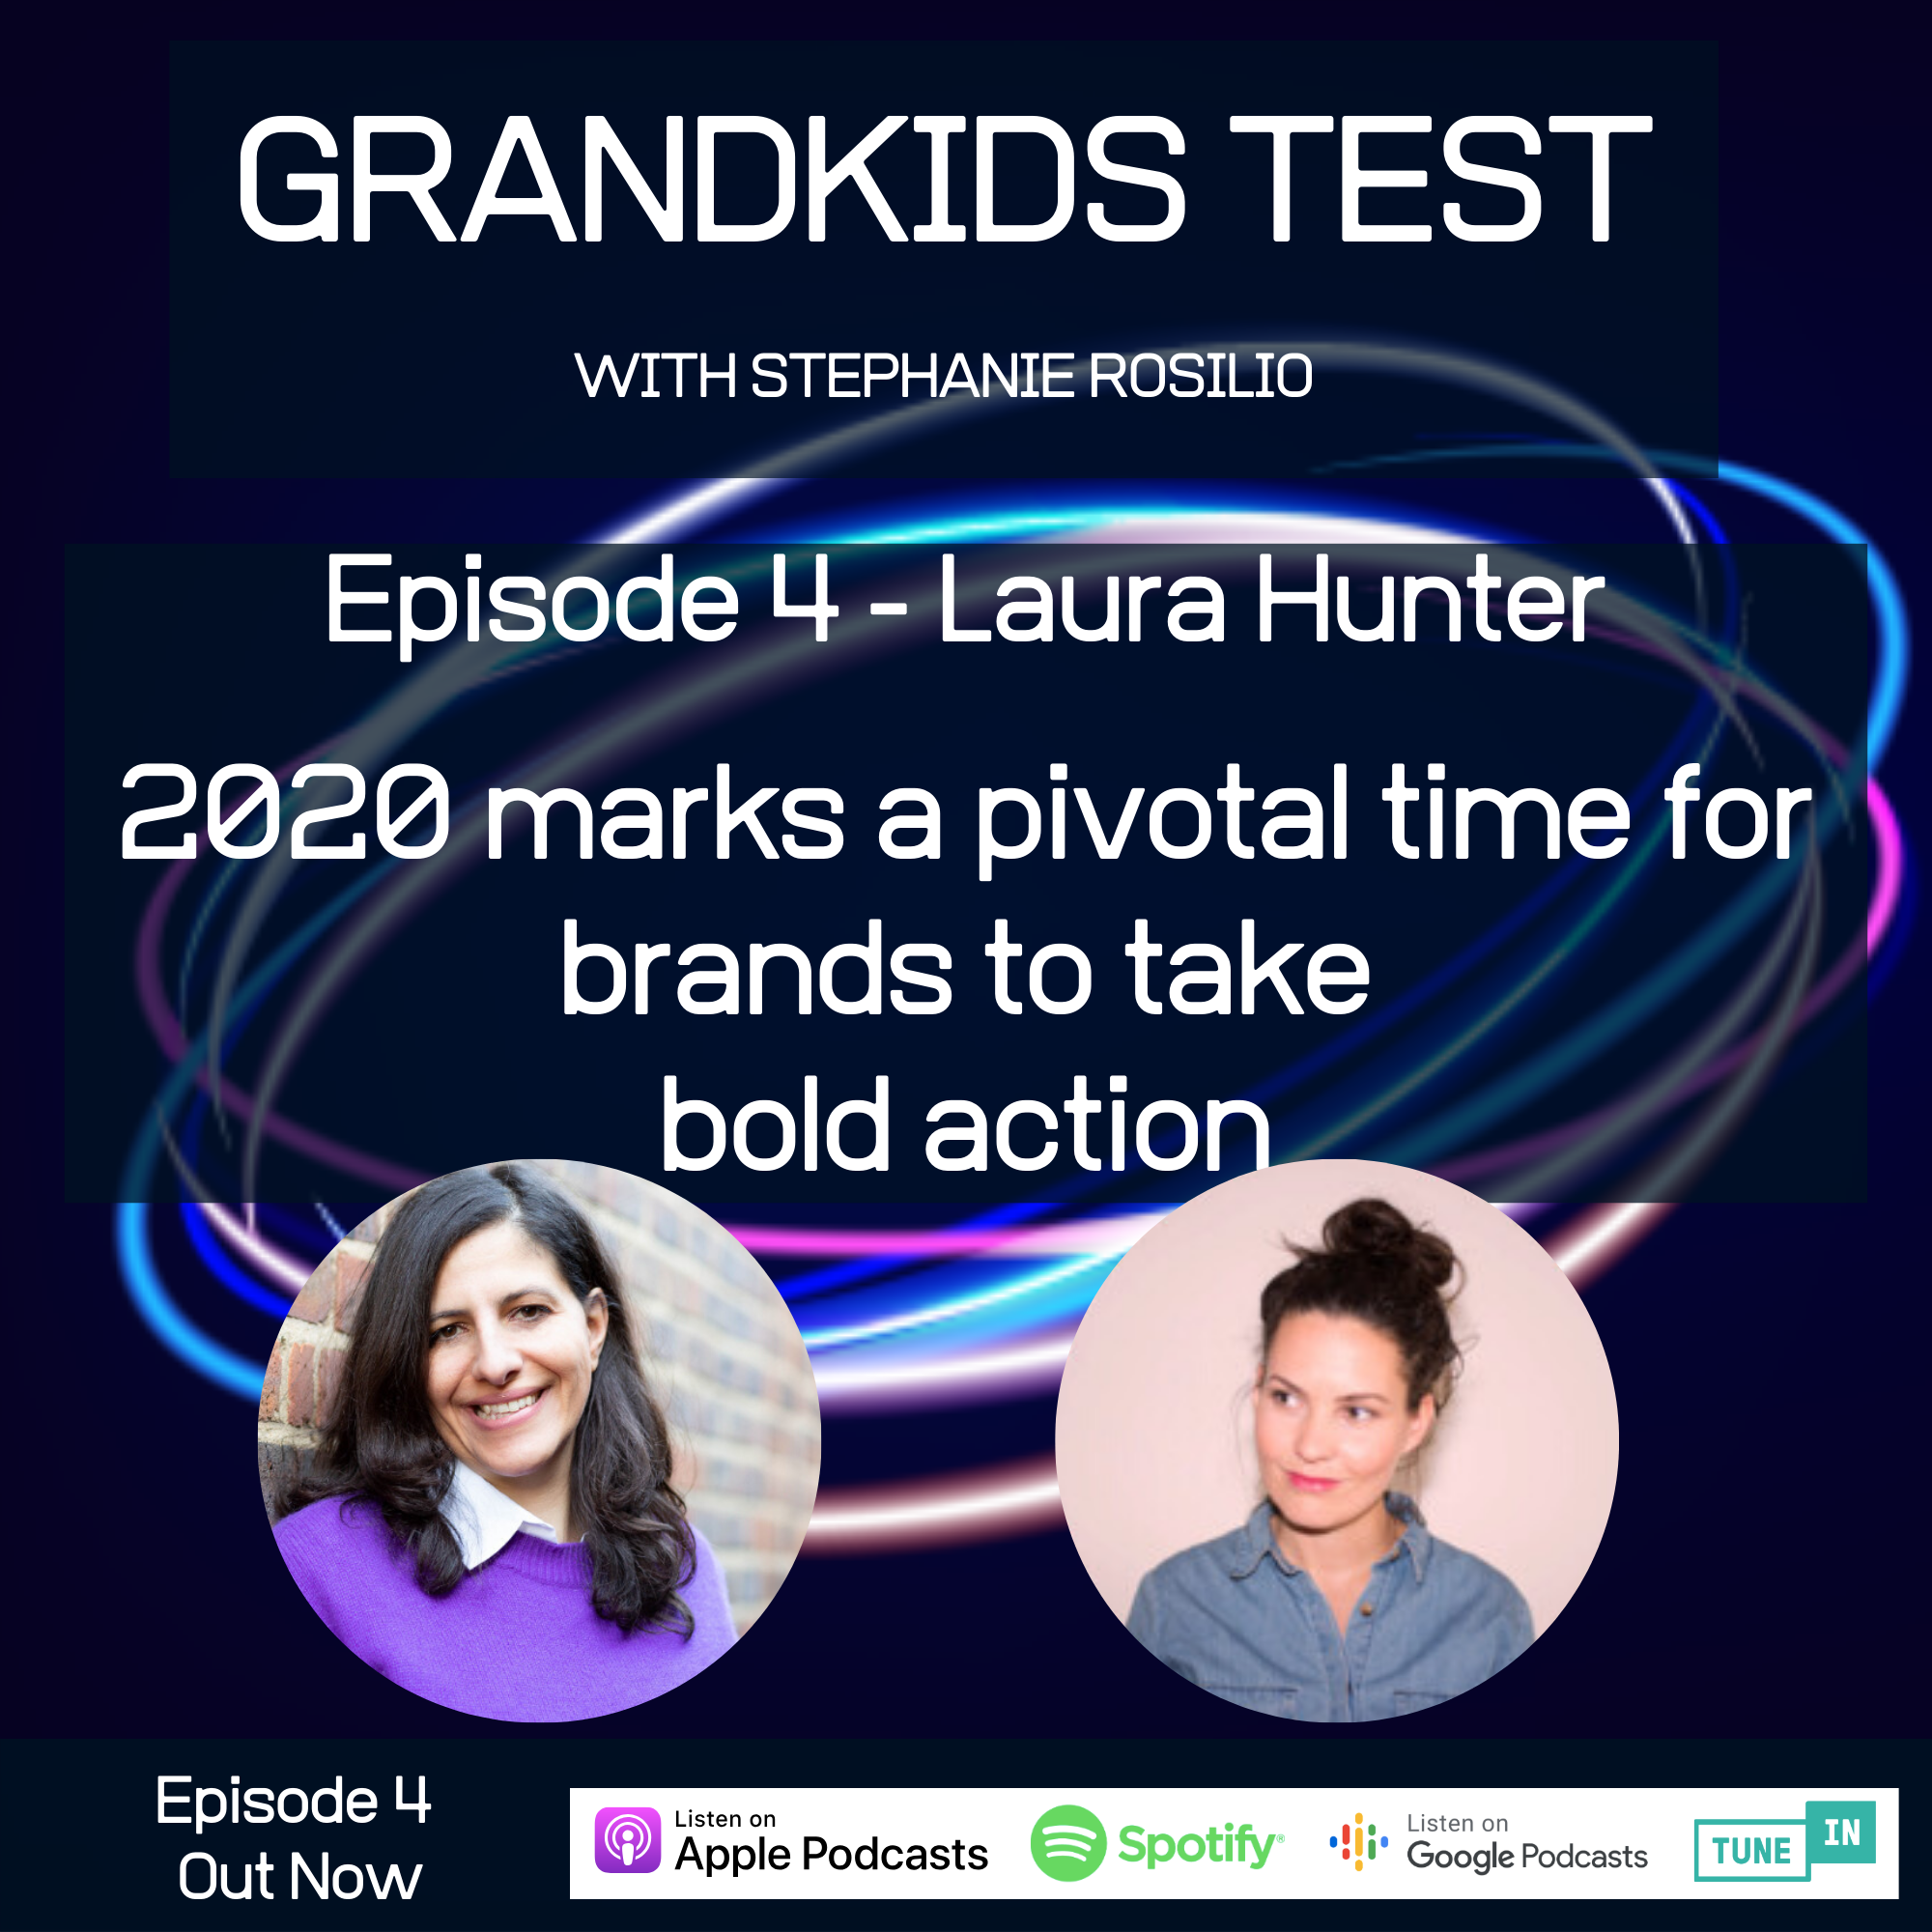 #004 - 2020 marks a pivotal time for brands to take bold action and become agents of positive social and environmental change.